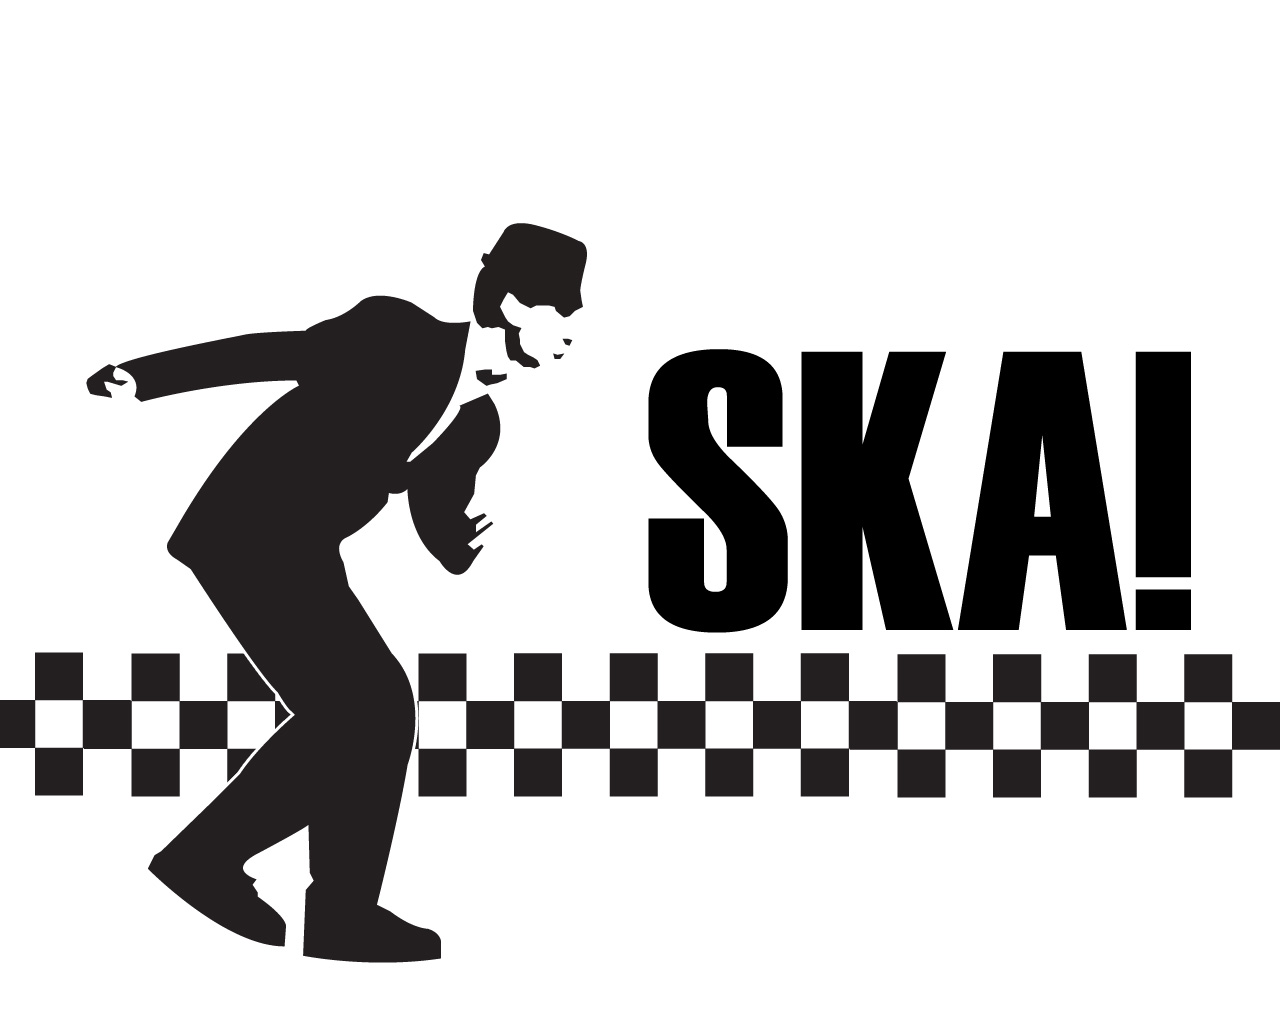 Ska and reggae are distinguishable